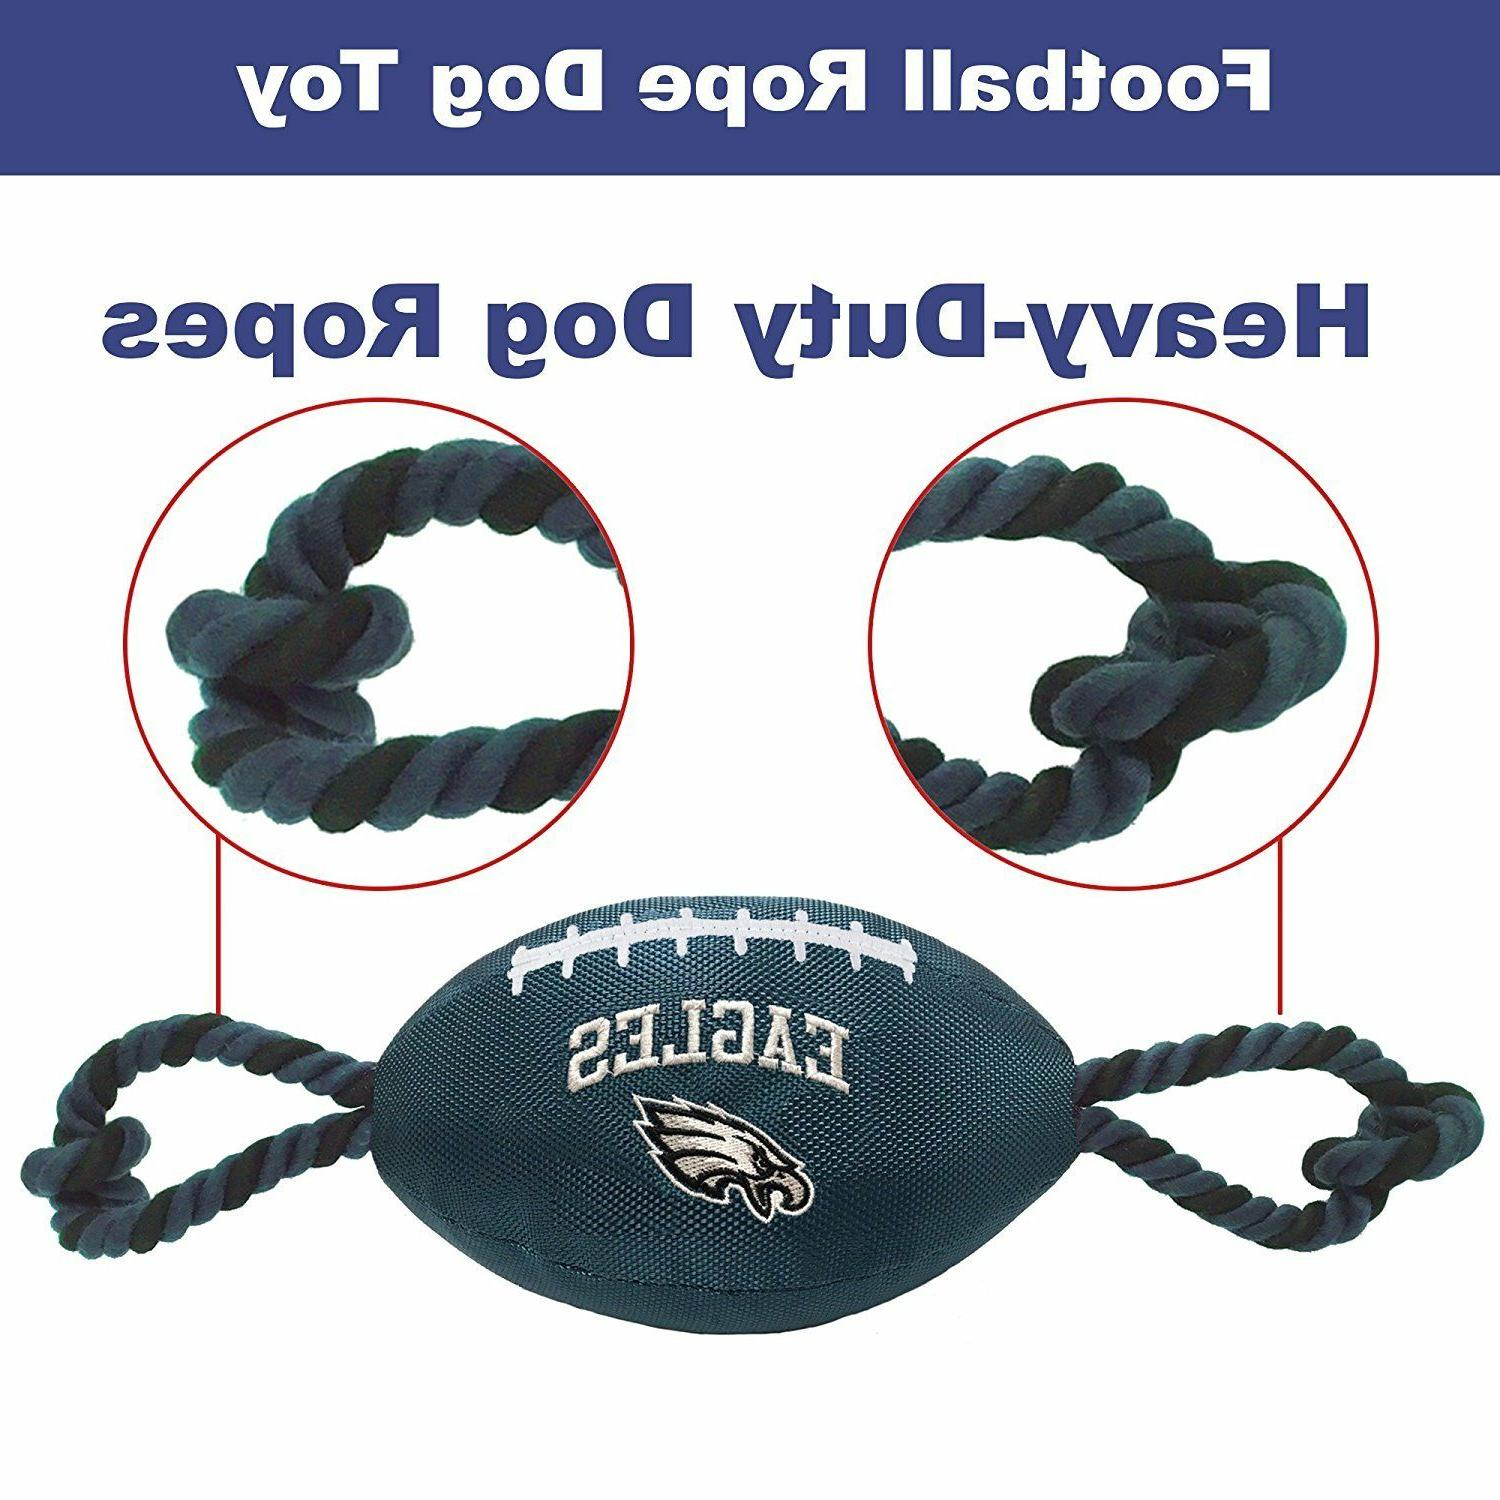 NFL Toy Licensed, Heavy-duty Tough Squeaker